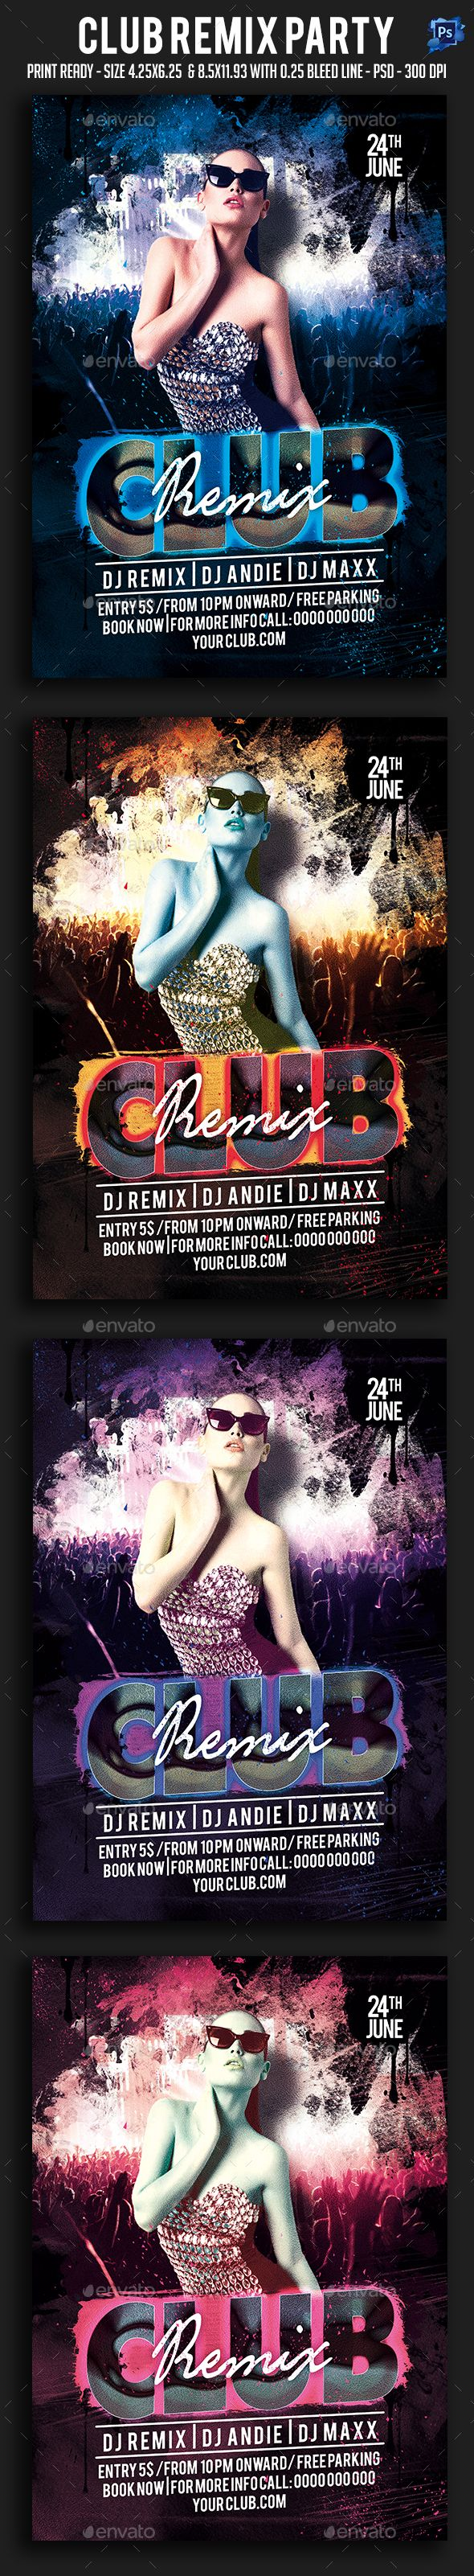 Club Remix Party Flyer — Photoshop PSD #dj #sound • Available here → https://graphicriver.net/item/club-remix-party-flyer/19832533?ref=pxcr